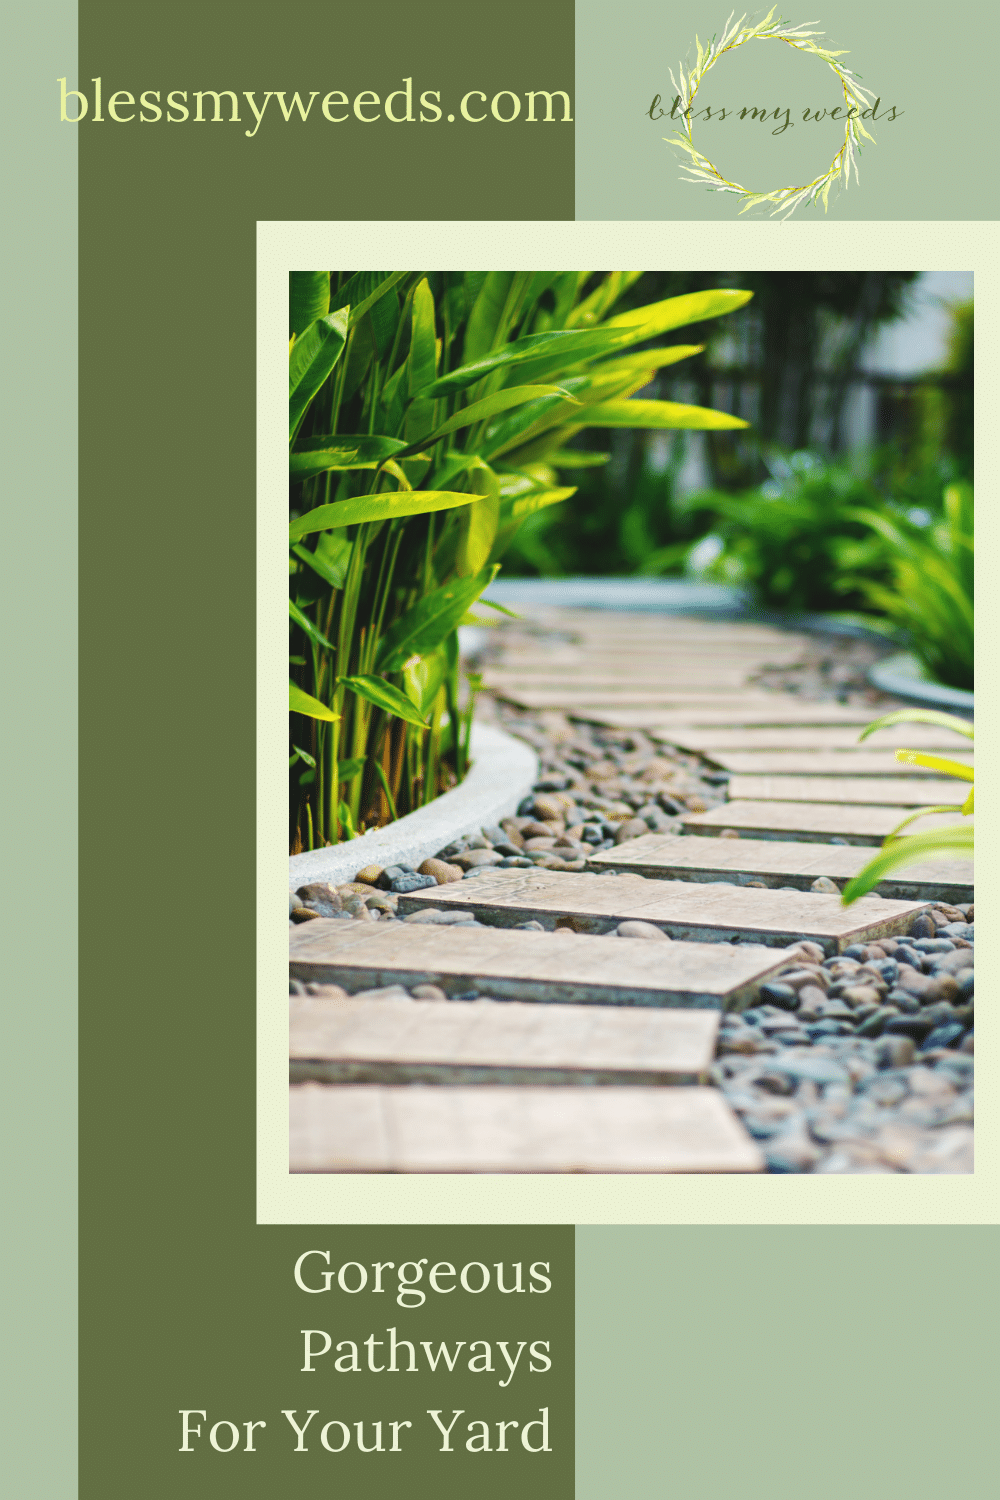 Blessmyweeds.com is the ultimate resource for gardeners and landscapers of all skill levels! Find all the best ideas to create a stunning outdoor space. Check out these amazing landscape pathways perfect for any yard!